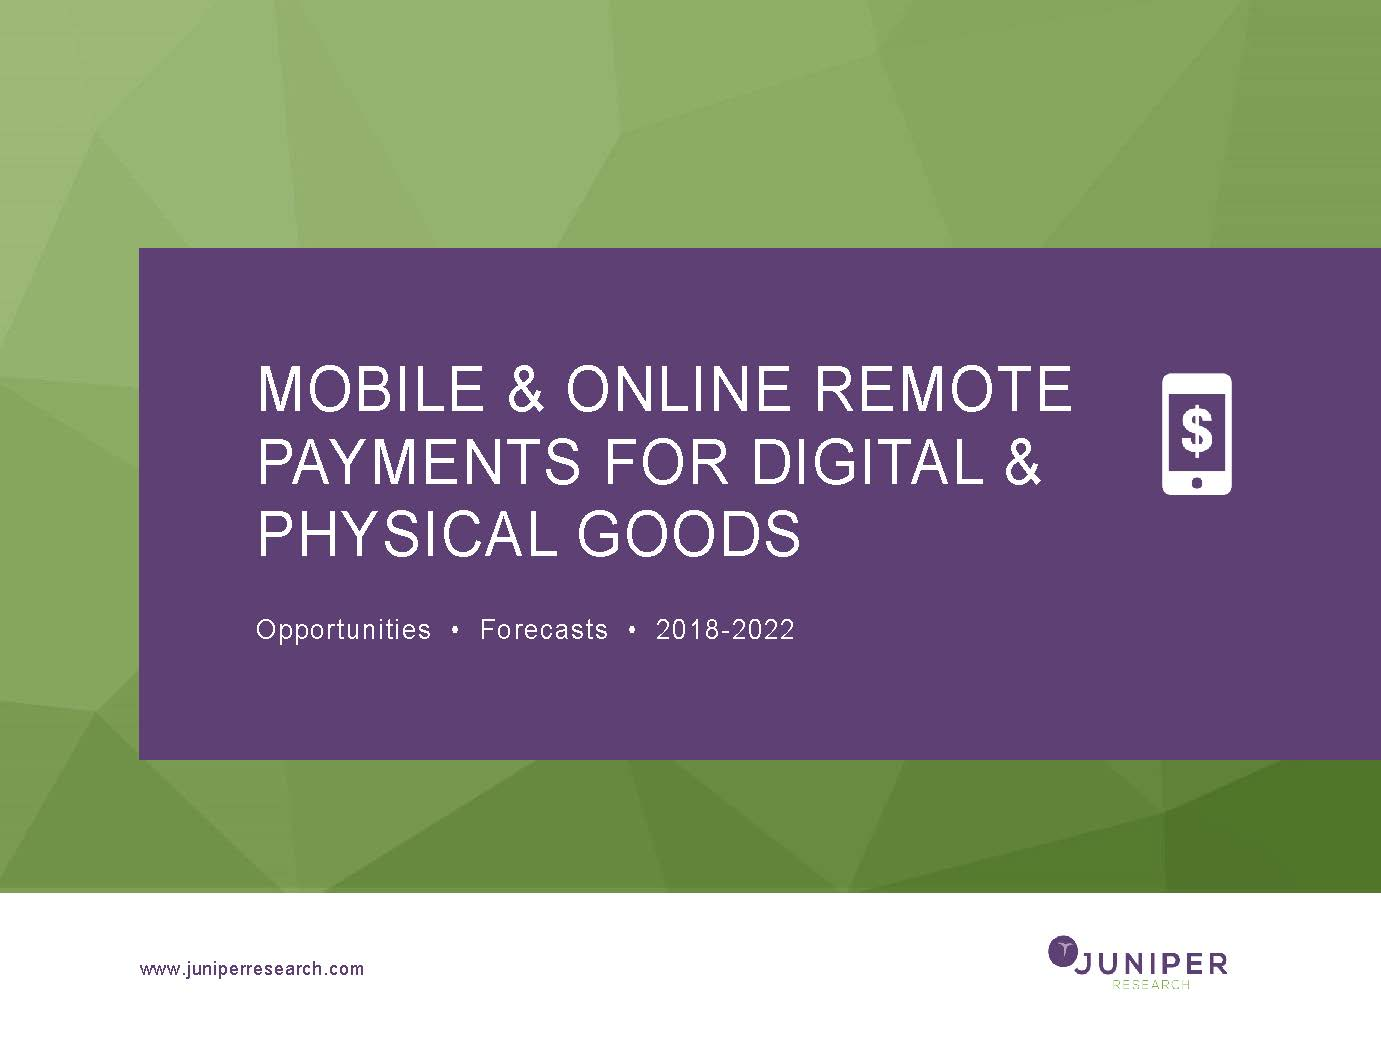 Mobile & Online Remote Payments for Digital & Physical Goods - Full Research Suite